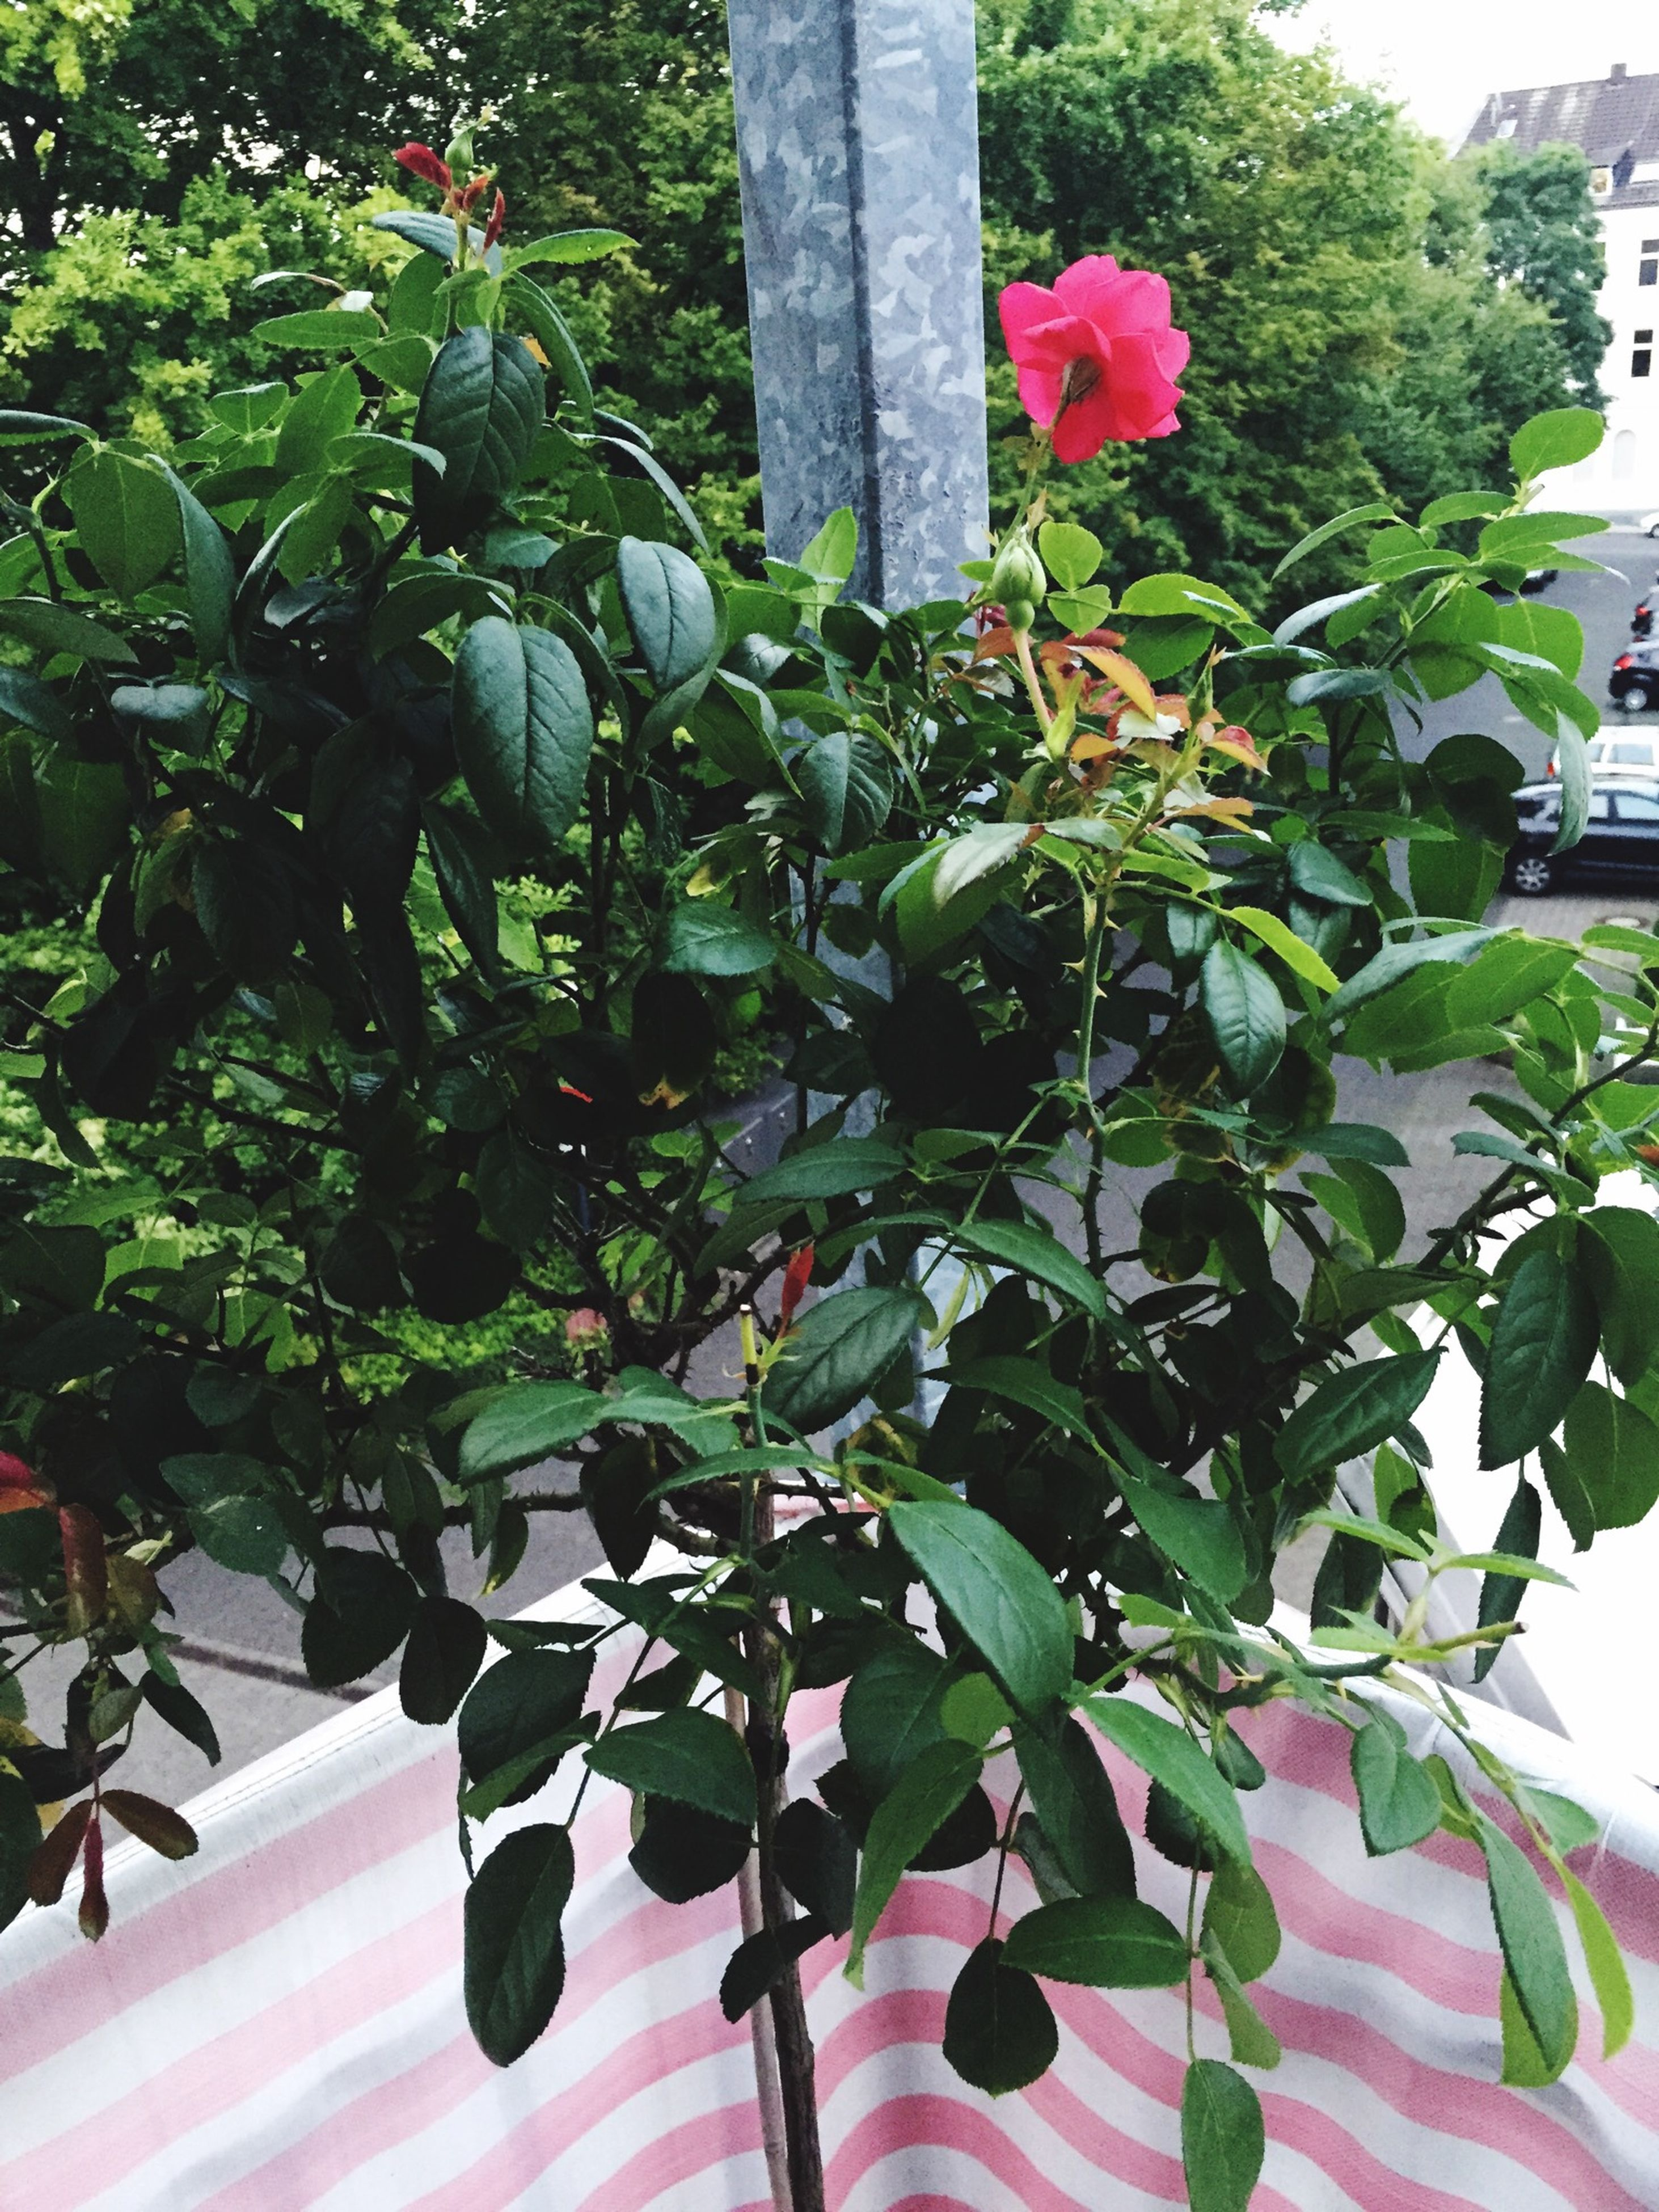 growth, leaf, flower, plant, building exterior, tree, built structure, potted plant, architecture, low angle view, nature, sunlight, green color, day, freshness, red, outdoors, no people, front or back yard, house